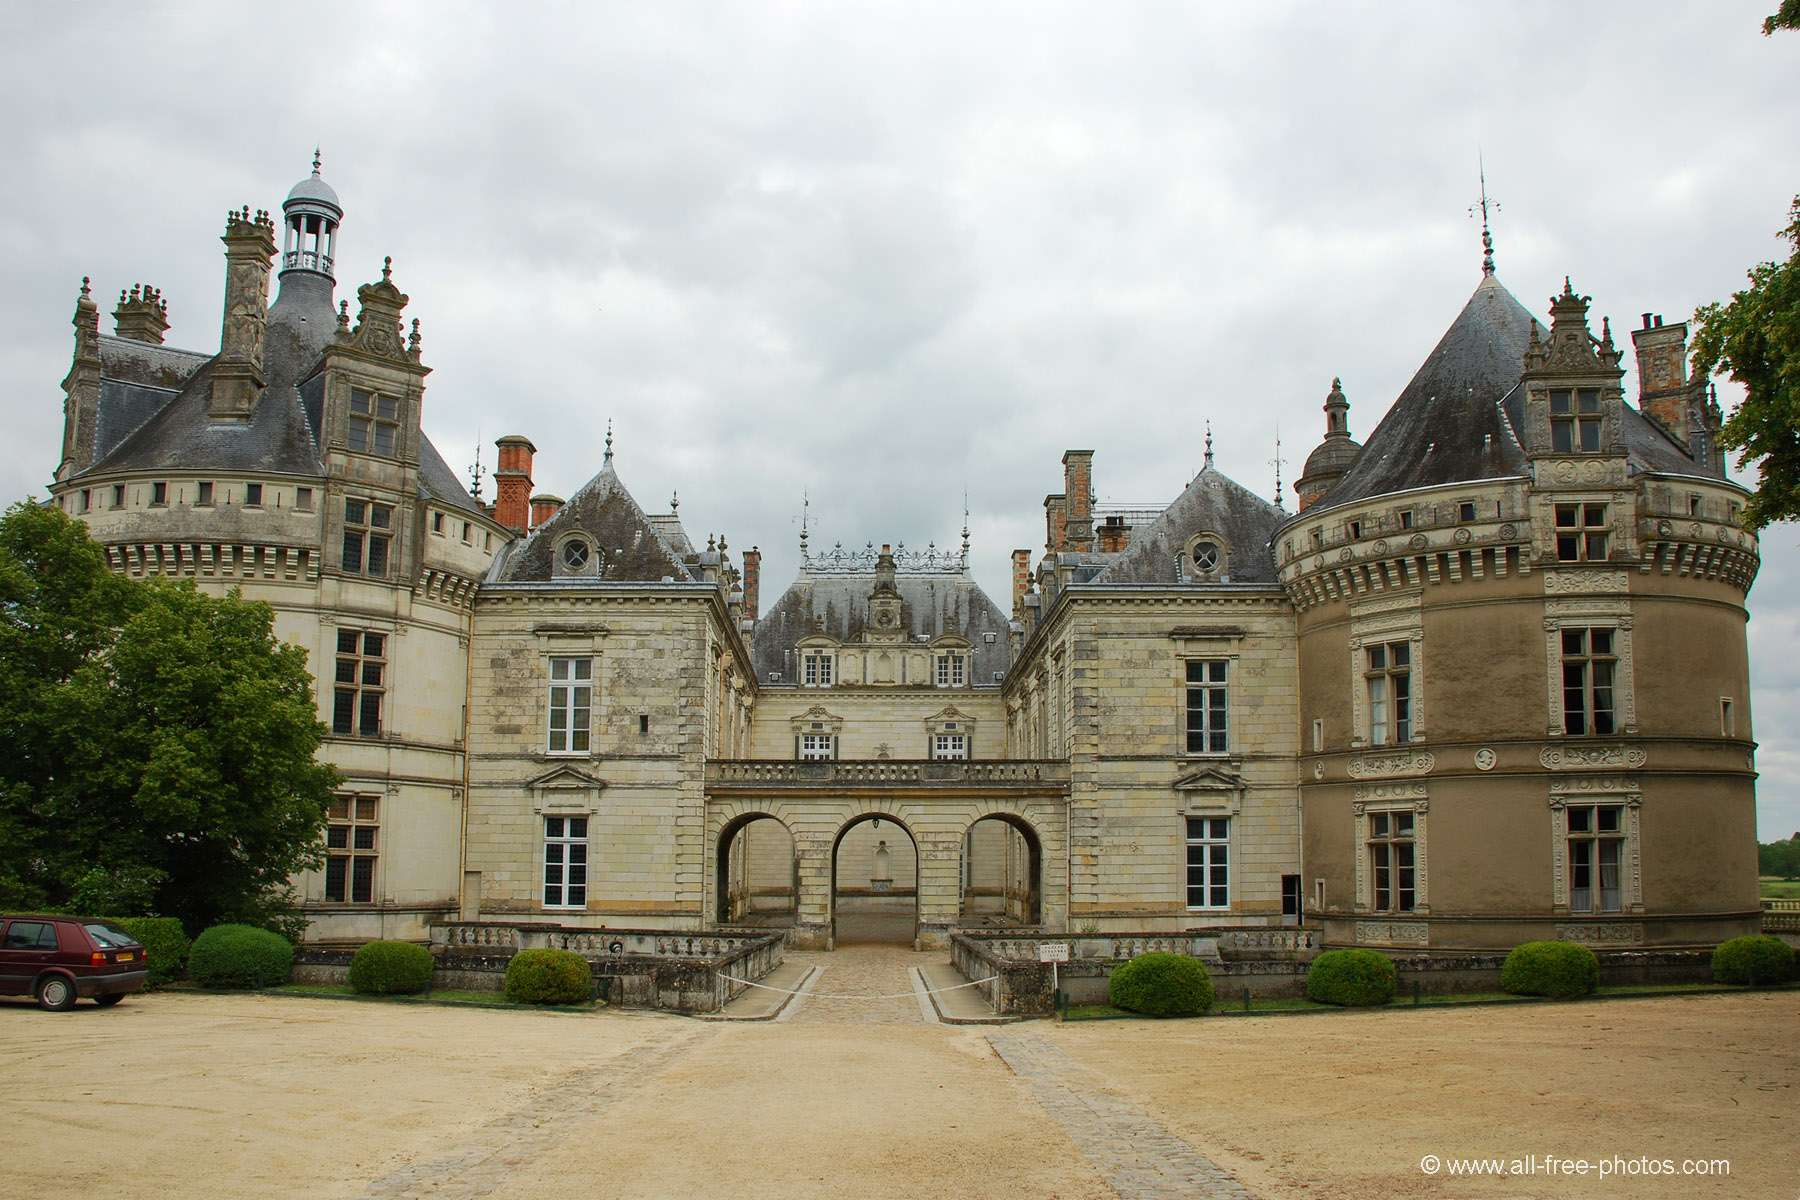 Castle of Le Lude